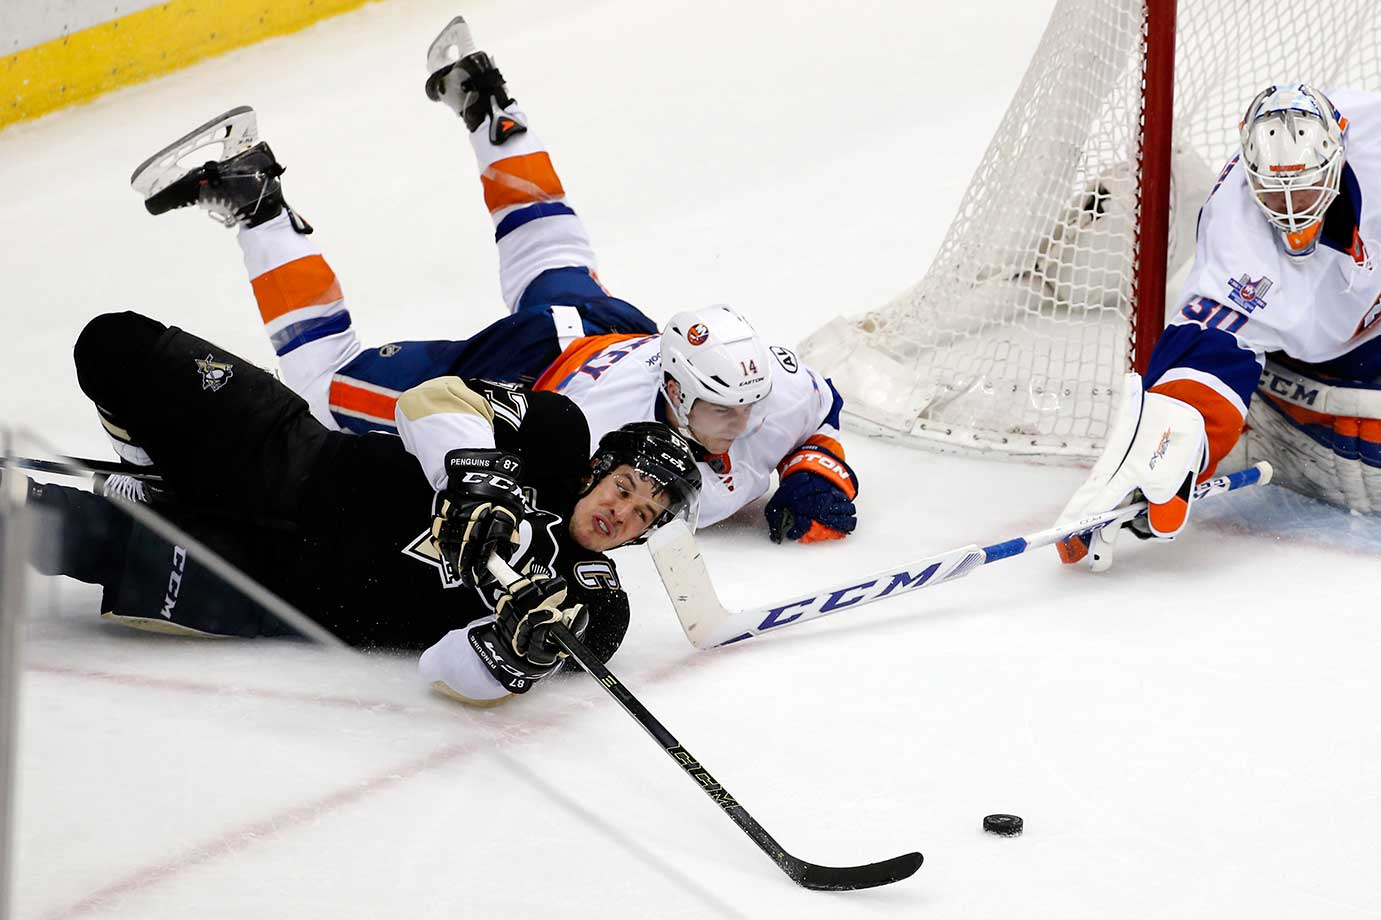 Another angle of Sidney Crosby's pass after his failed attempt at a wrap-around against Thomas Hickey and goalie Jean-Francois Berube.